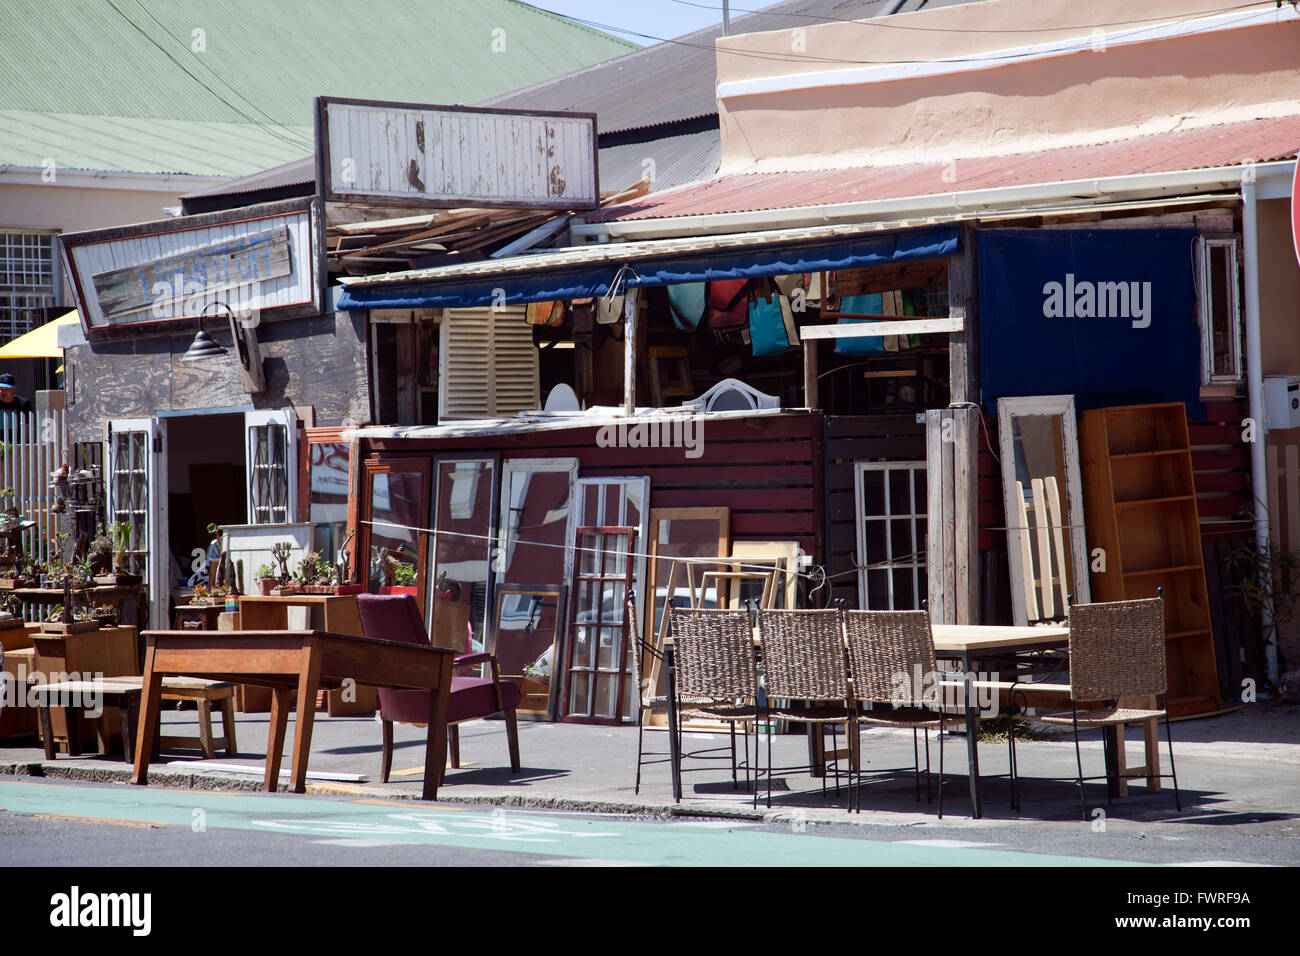 Woodstock Albert Rd - Furniture Shop -  Cape Town - South Africa - Stock Image